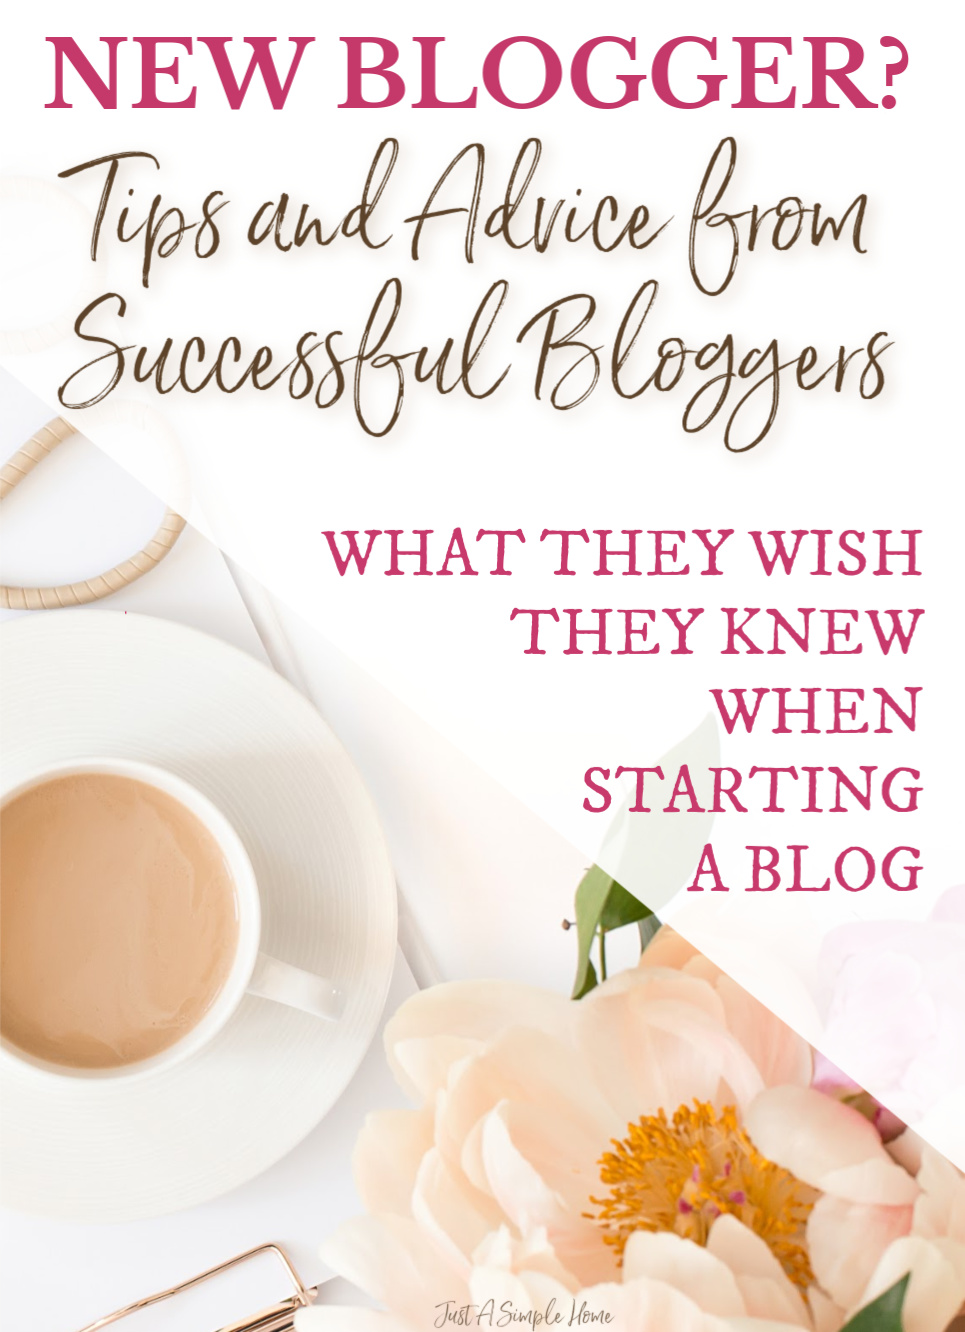 Tips and Advice For Every New Bloggers from Successful Bloggers